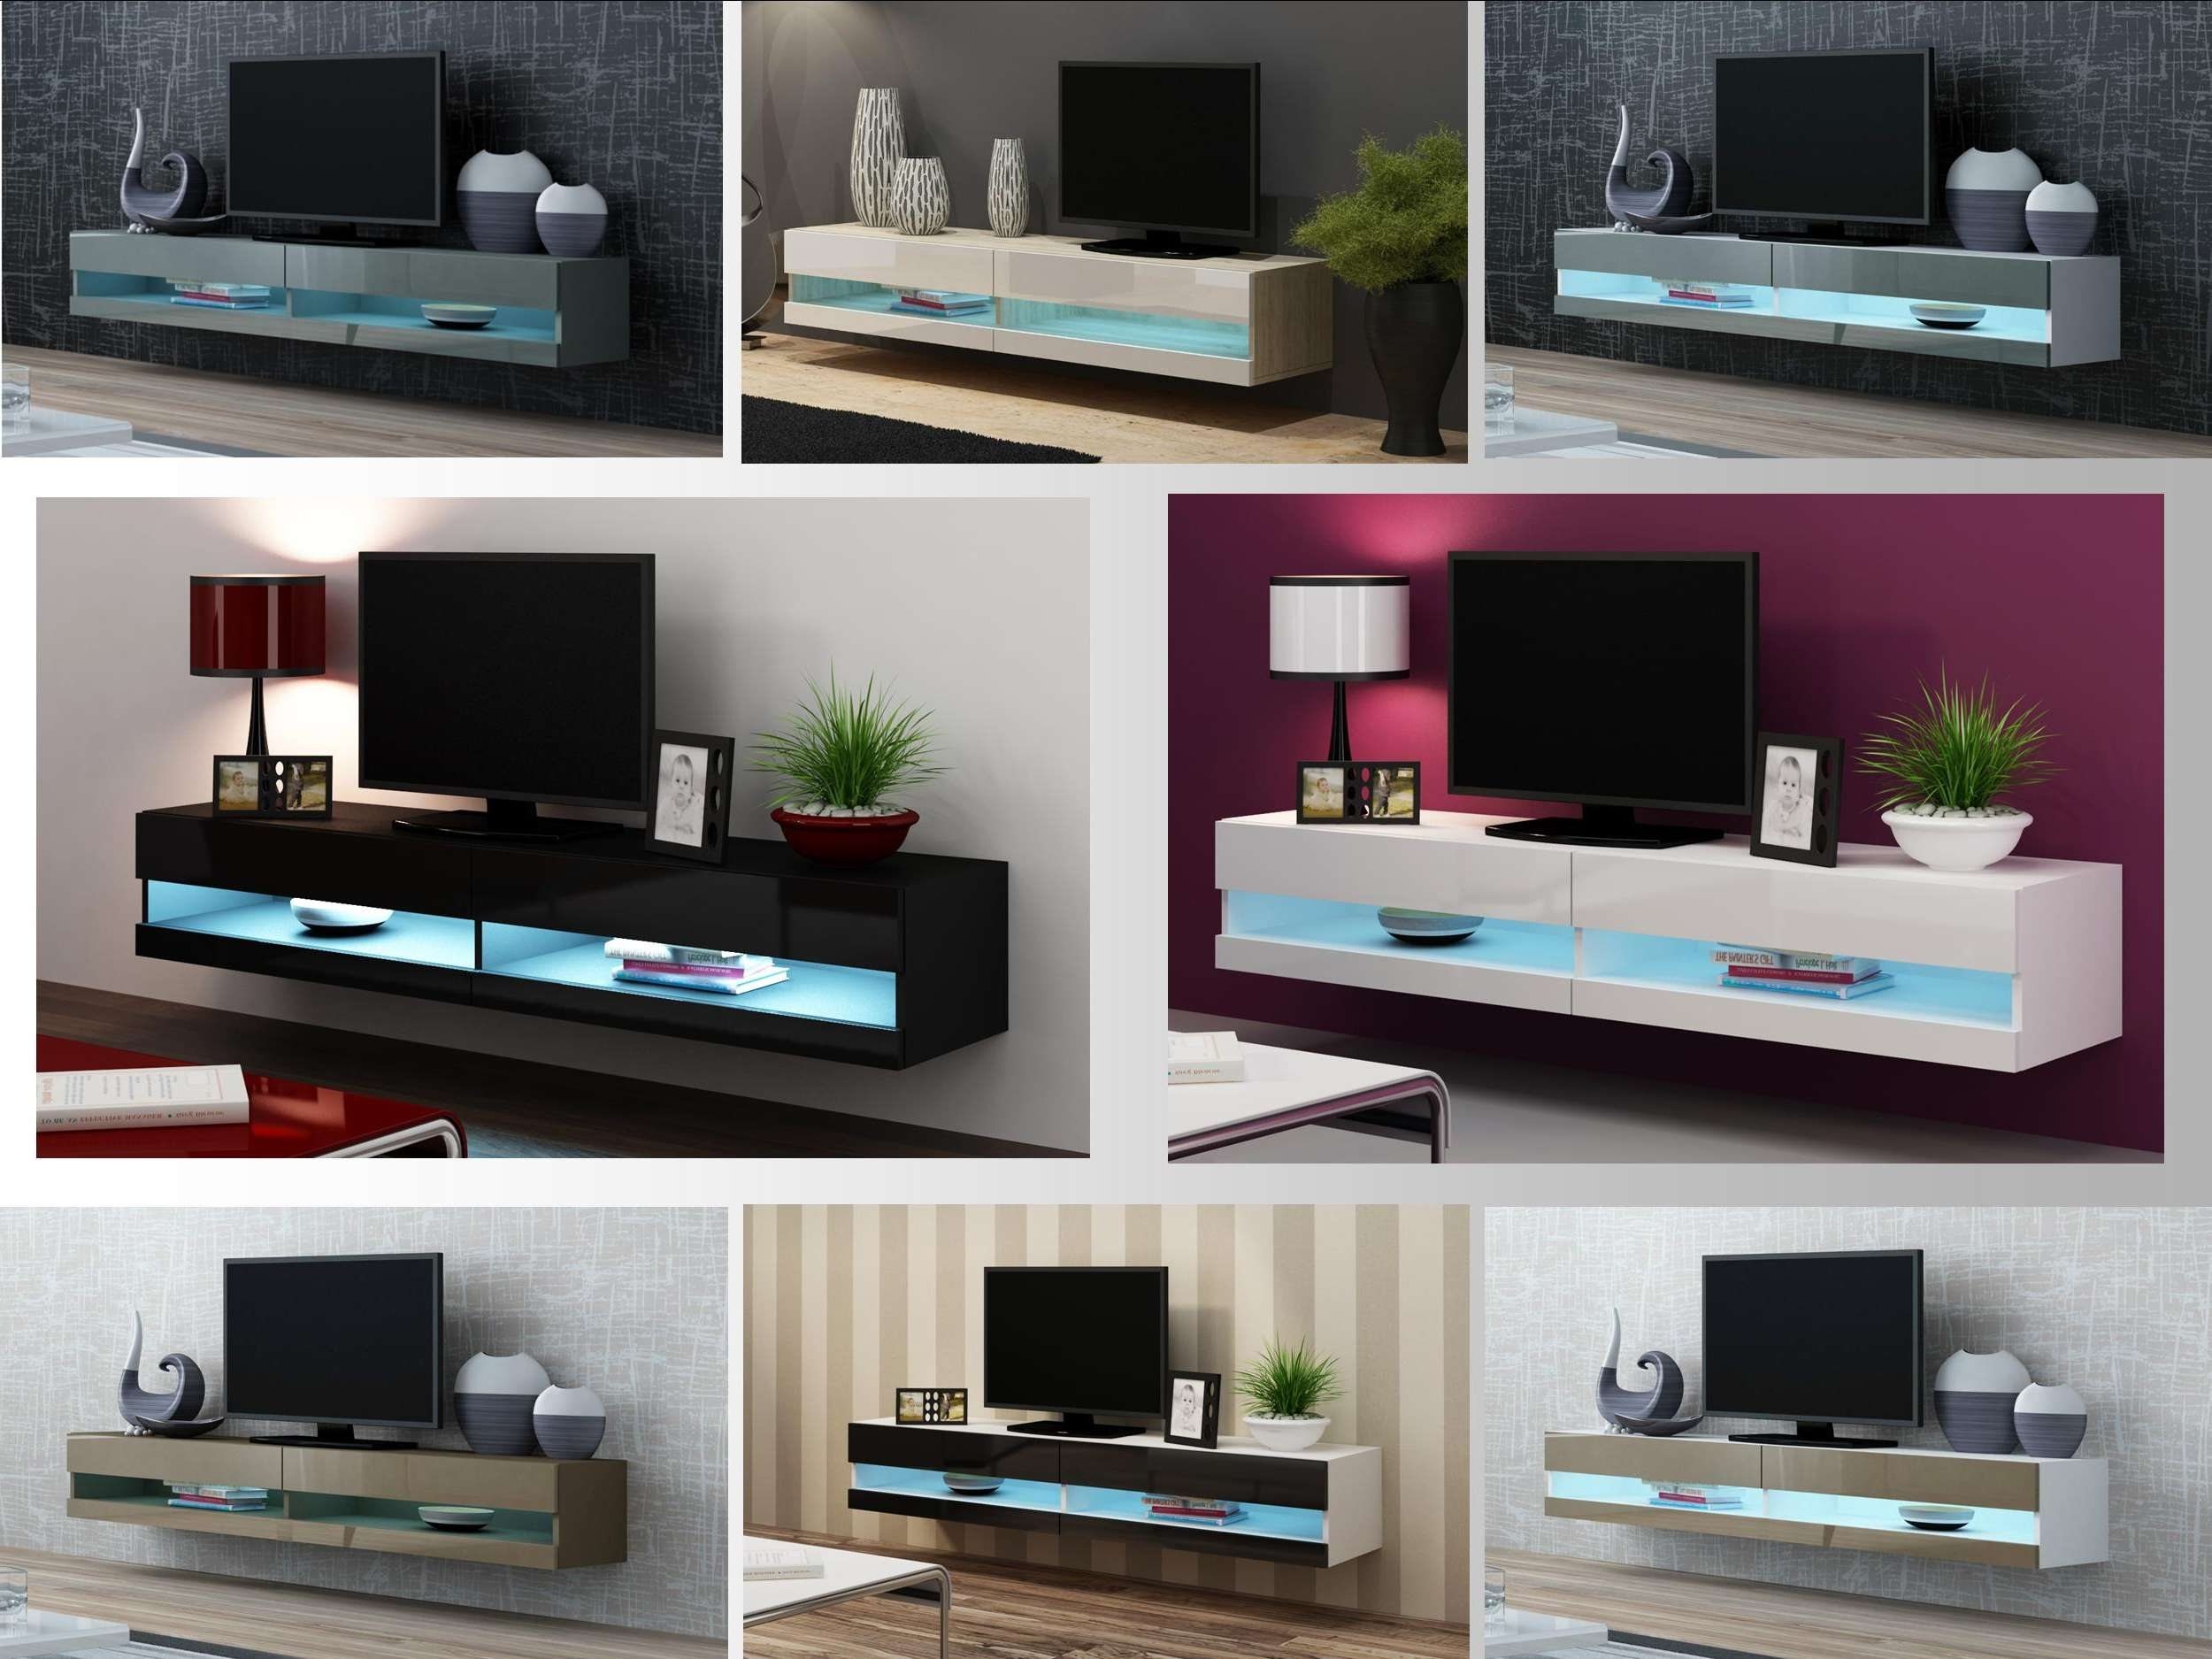 High Gloss Tv Stand Cabinet With Led Lights | Entertainment Throughout Gloss Tv Stands (View 8 of 15)